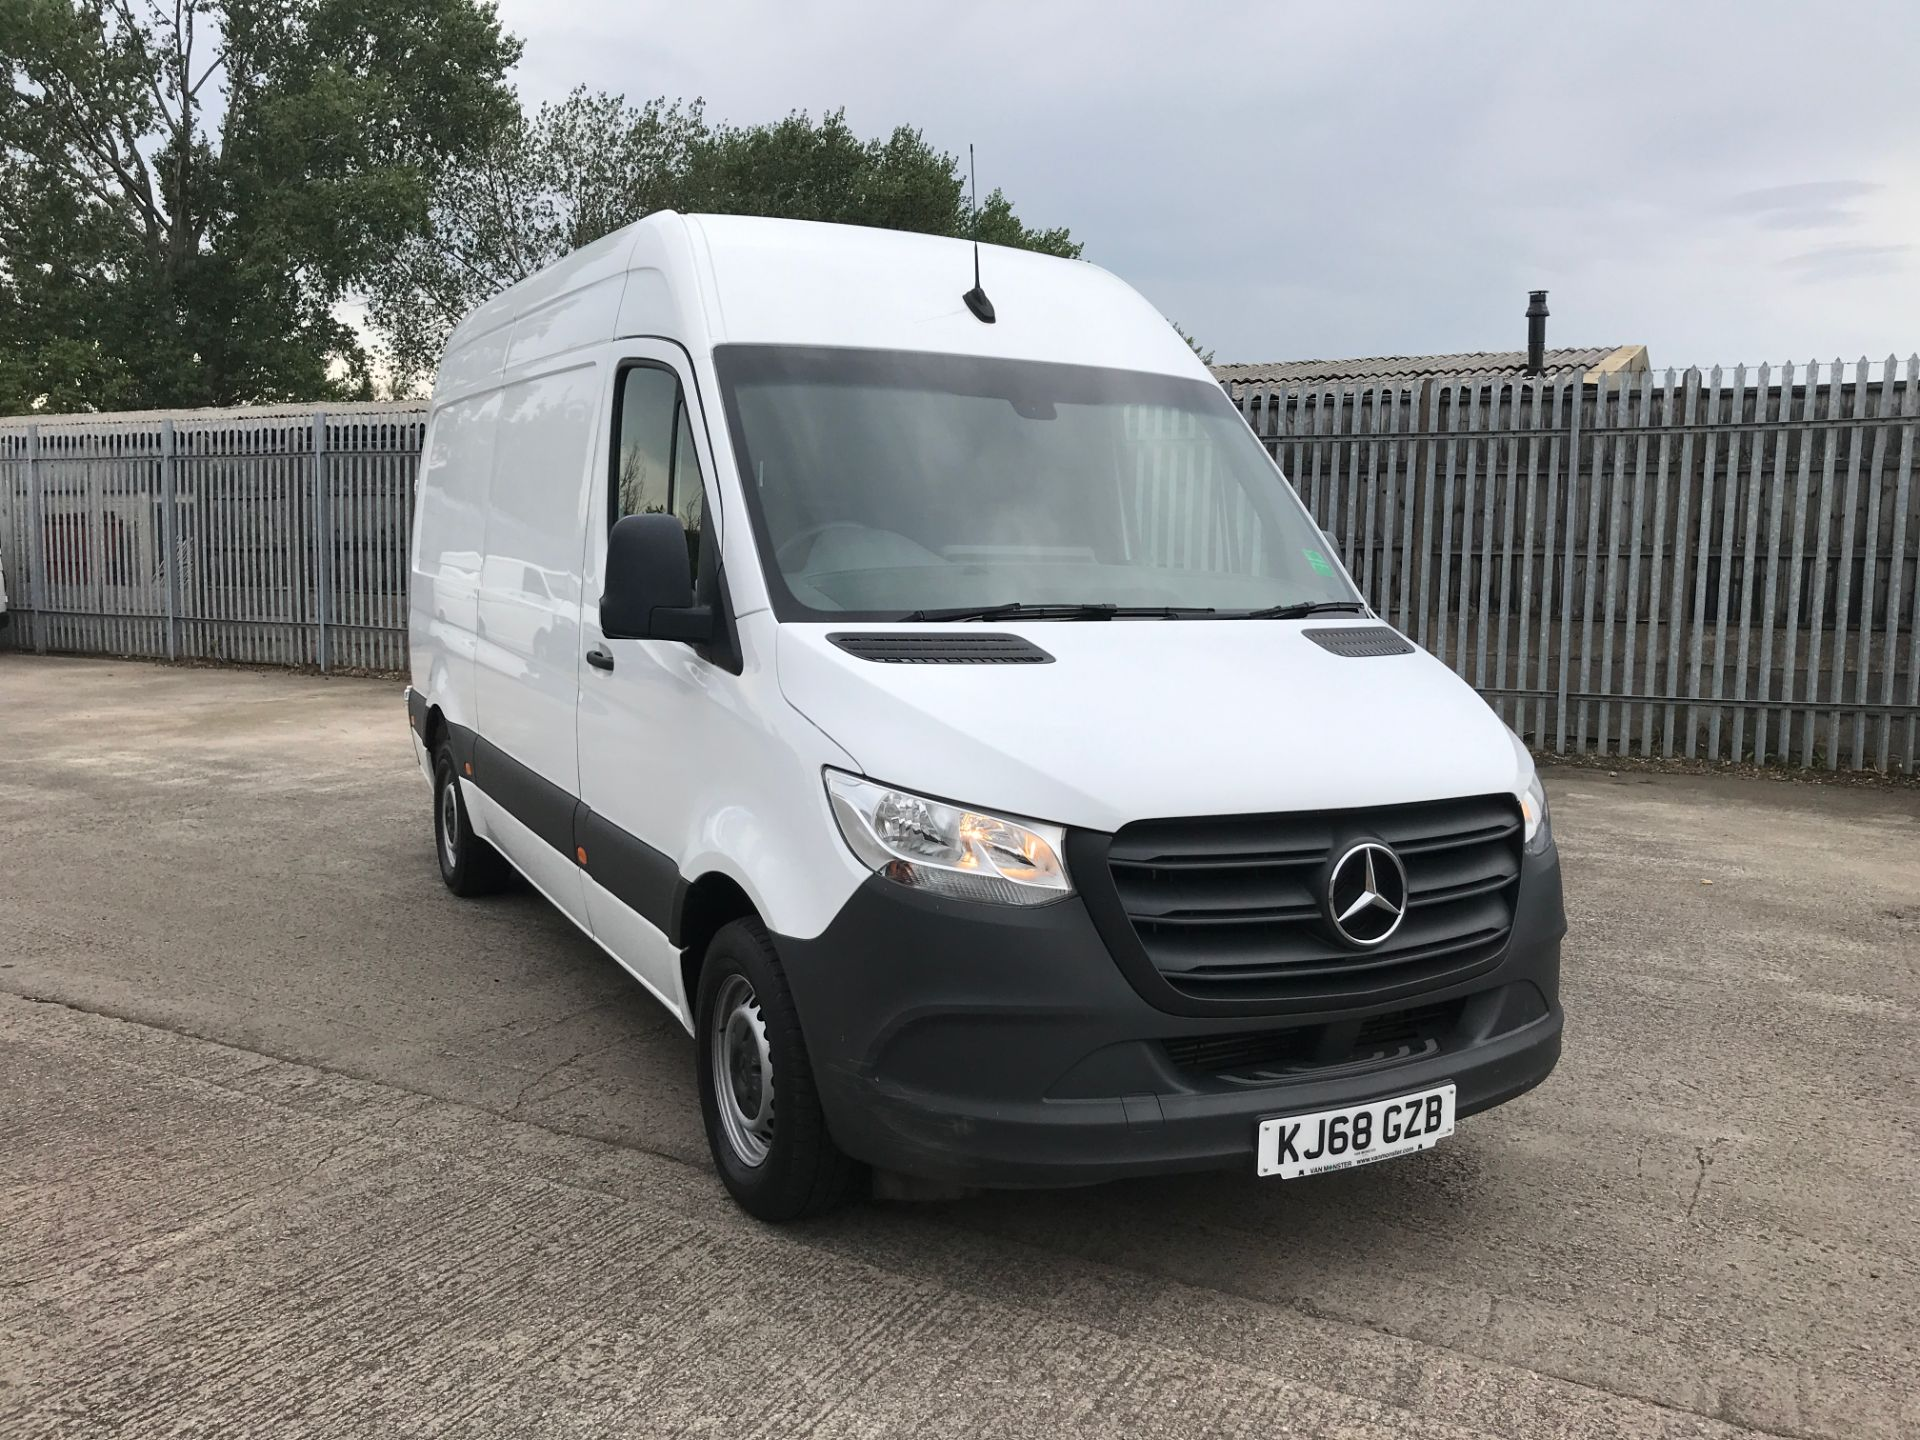 2019 Mercedes-Benz Sprinter 314CDI L2 H2 140PS EURO 6 (KJ68GZB)